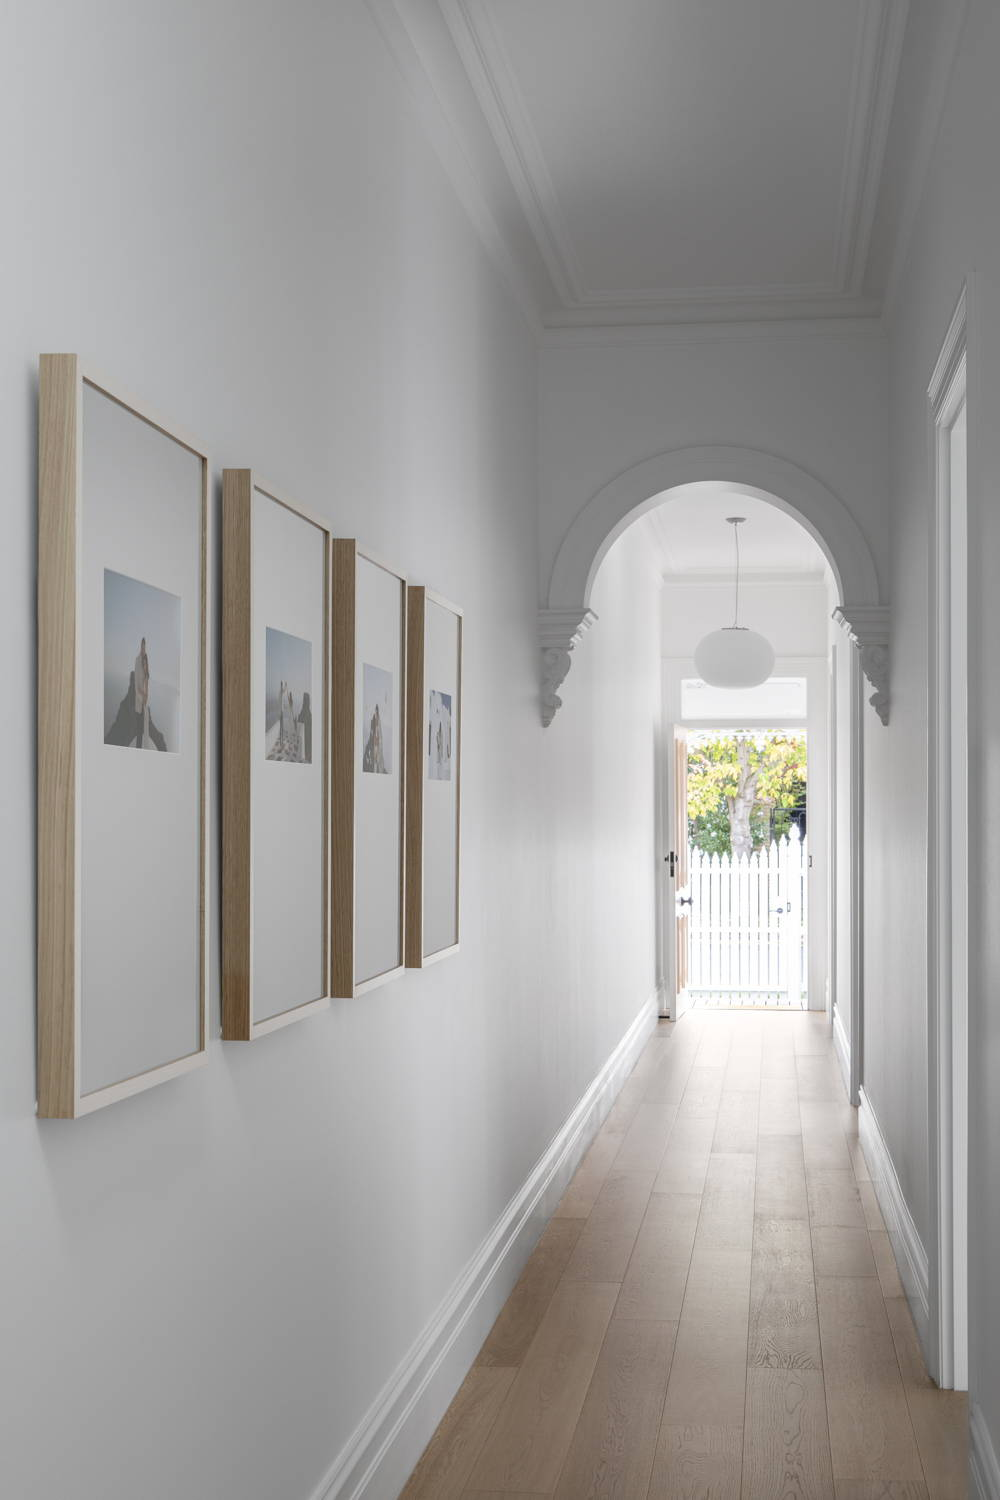 Gallery Wall of Framed Photography in a beautiful hallway